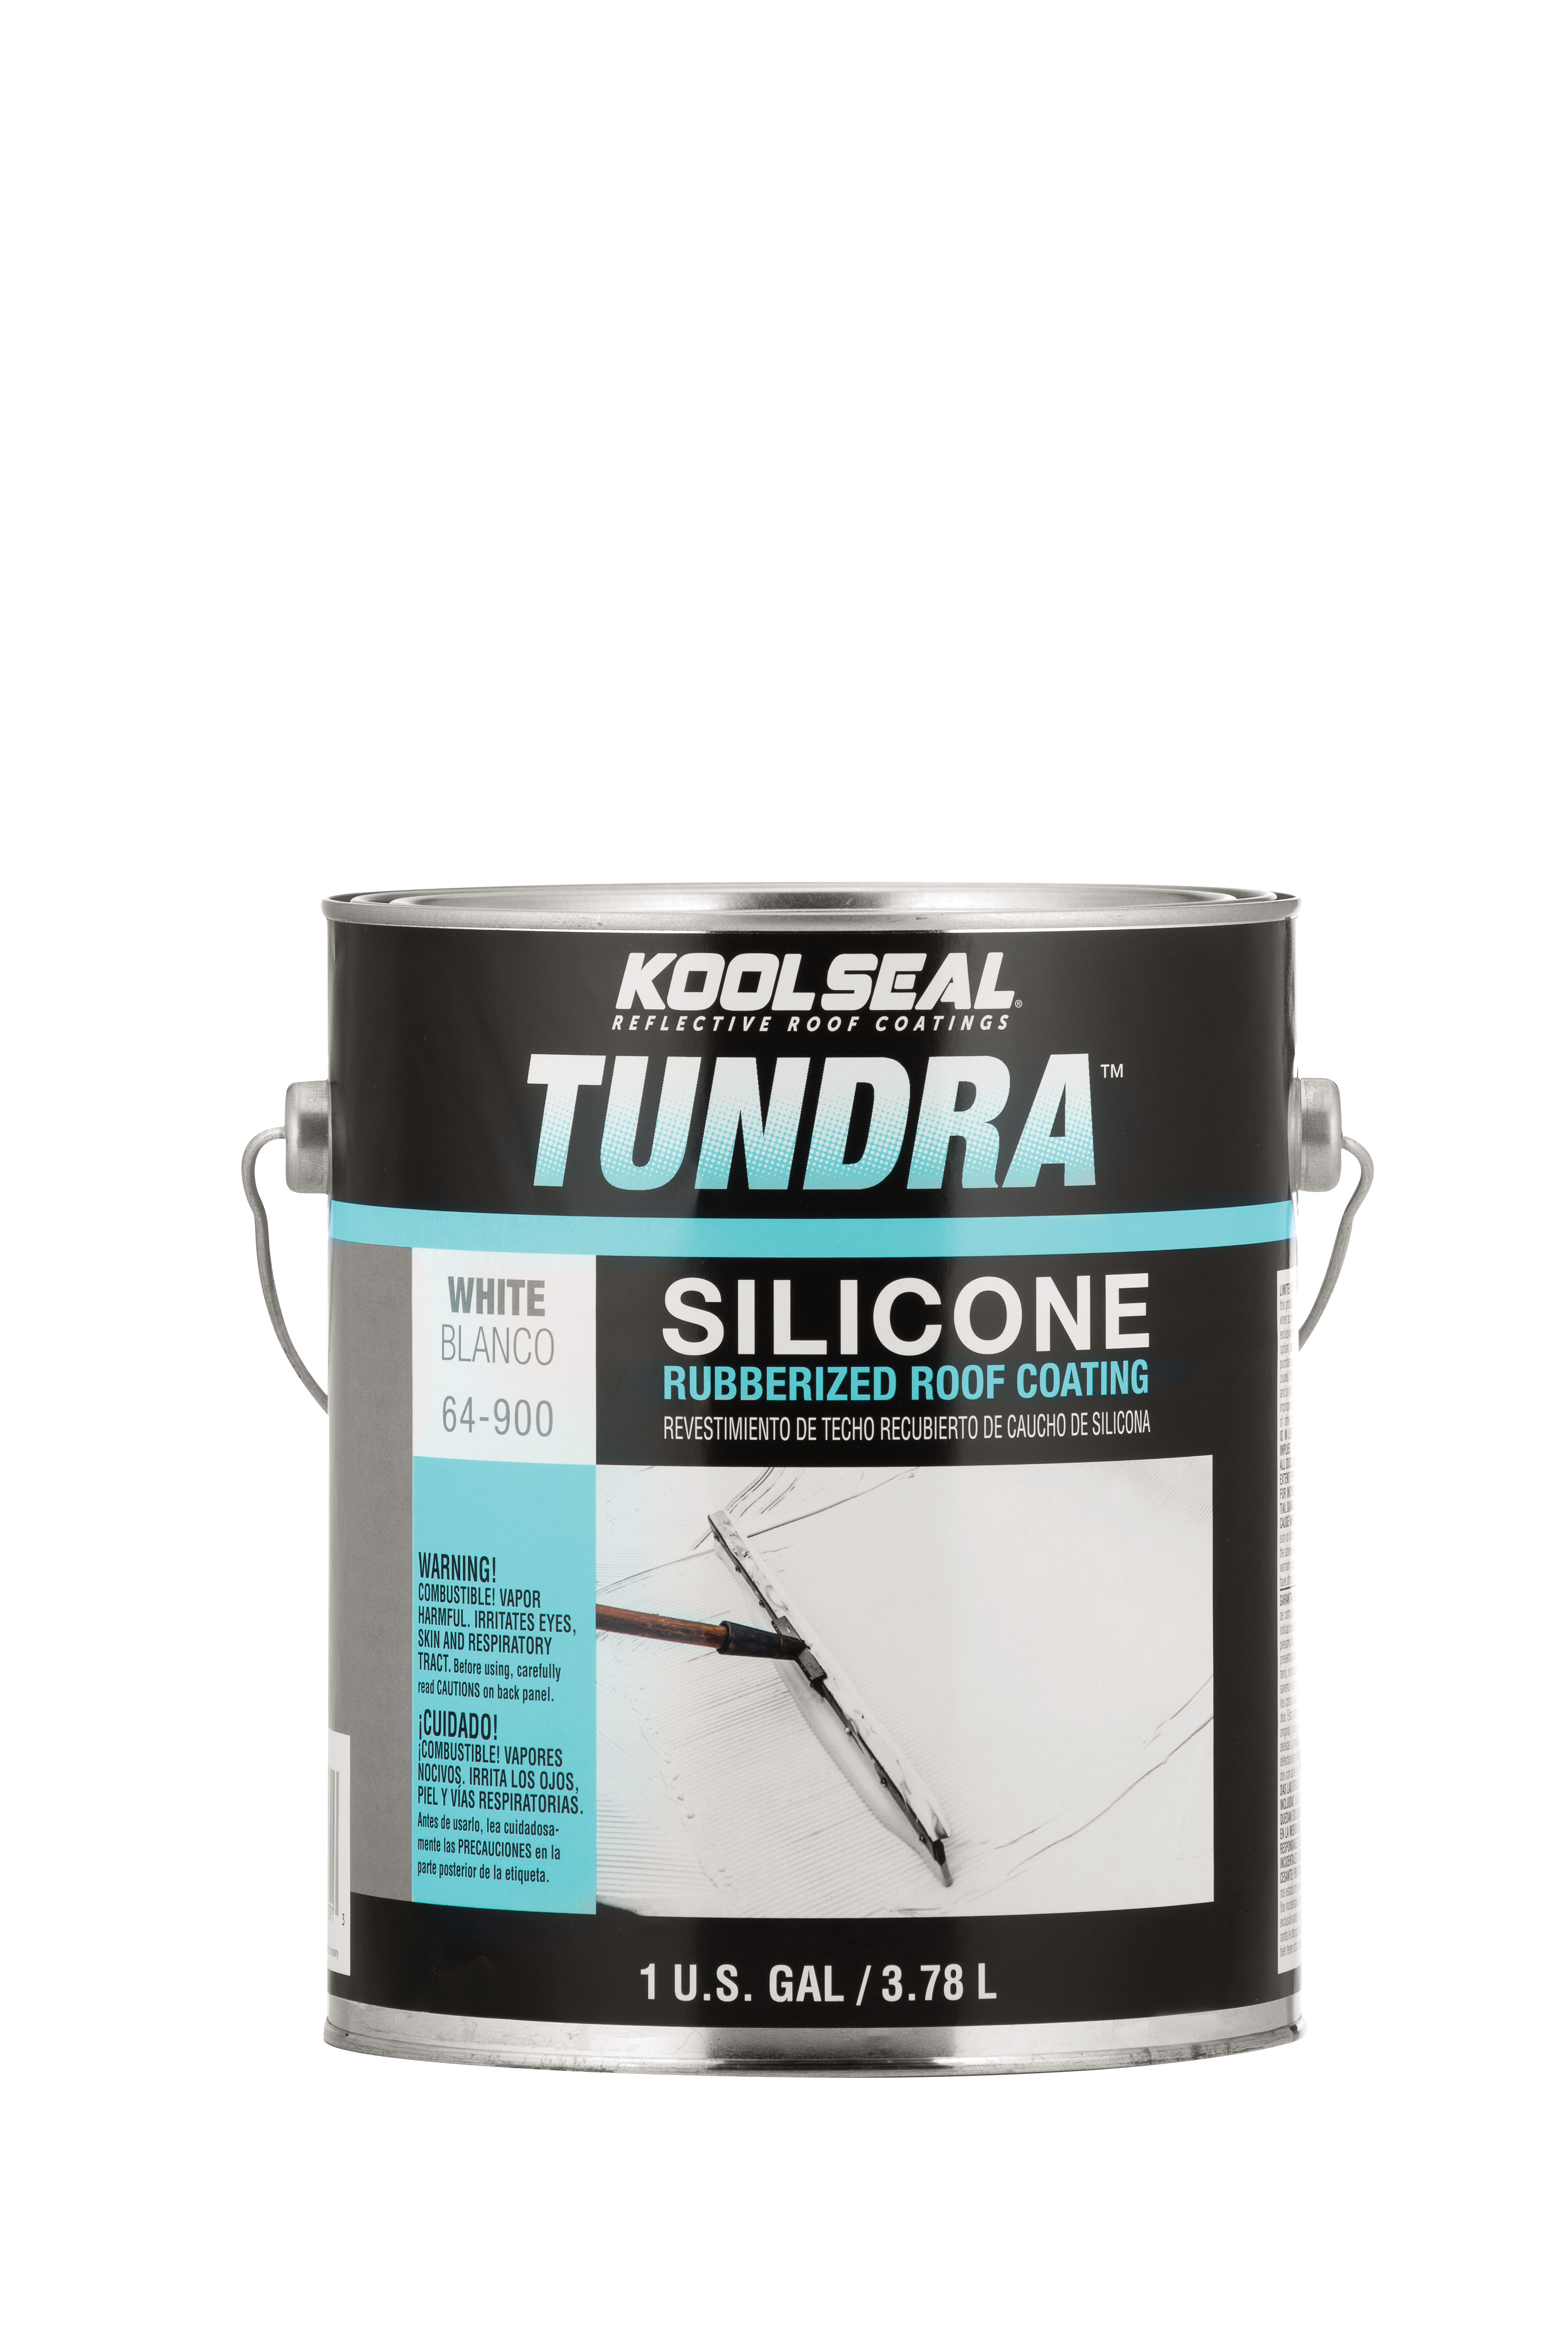 tundraâ silicone rubberized white roof coating koolseal